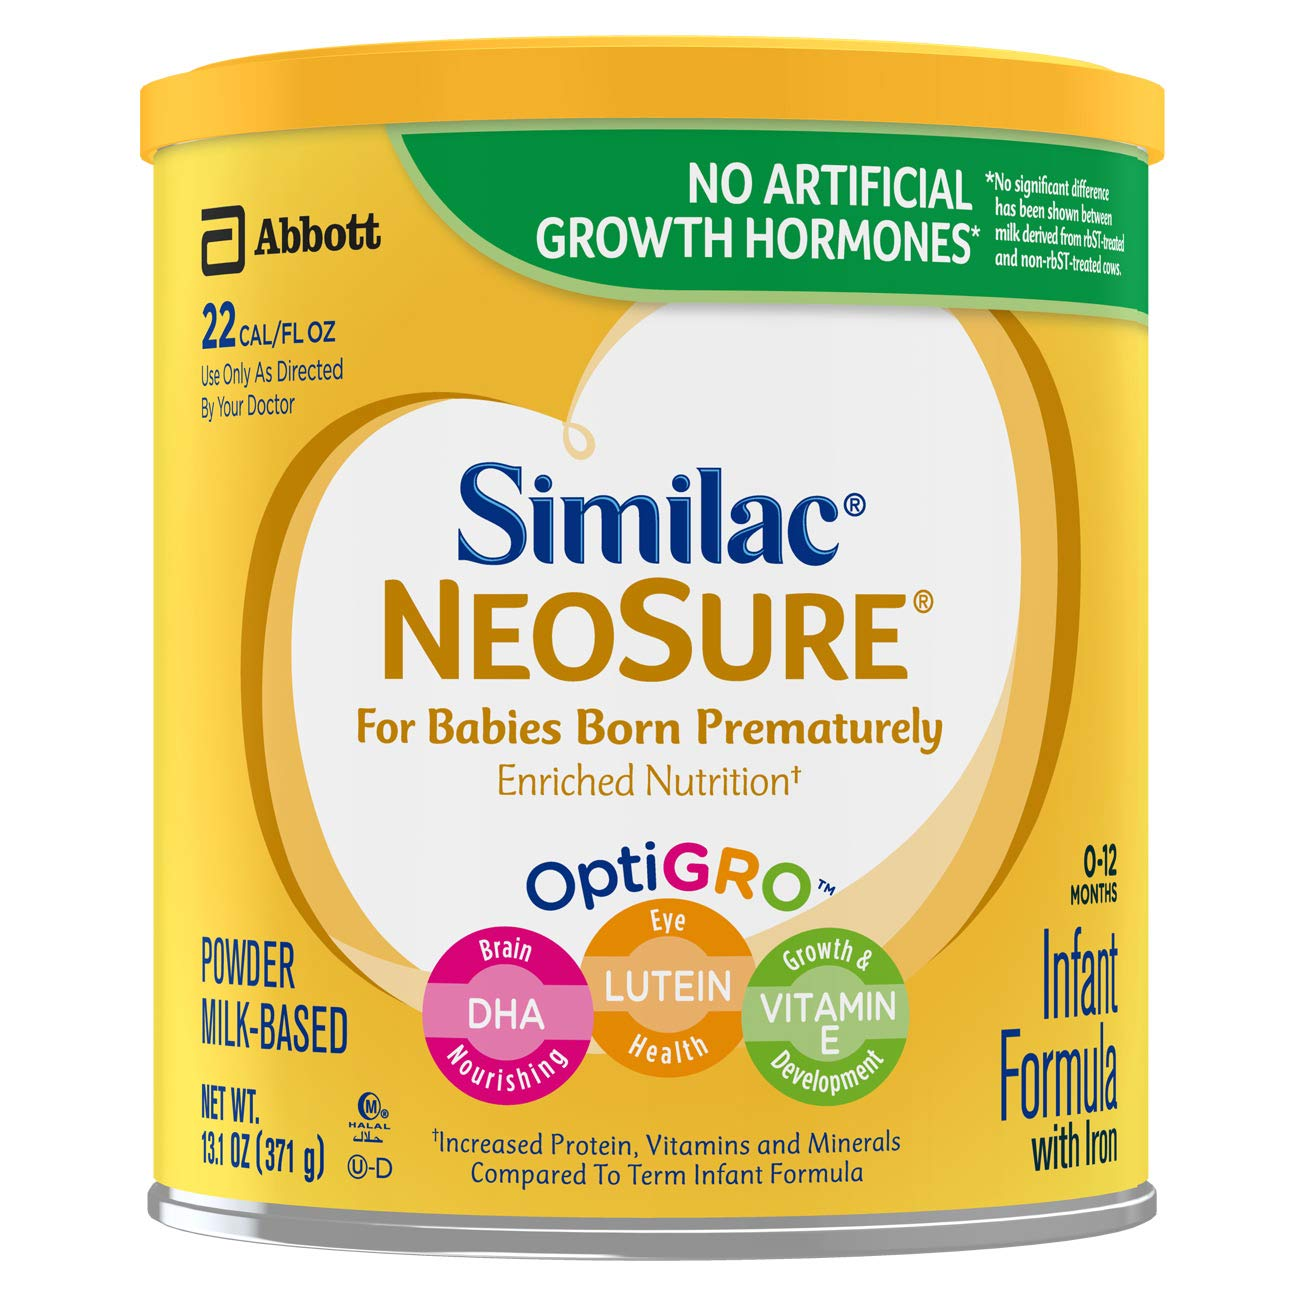 Similac NeoSure Infant Formula with Iron, For Babies Born Prematurely, Powder, 13.1 ounces (Pack of 6) 070074574301